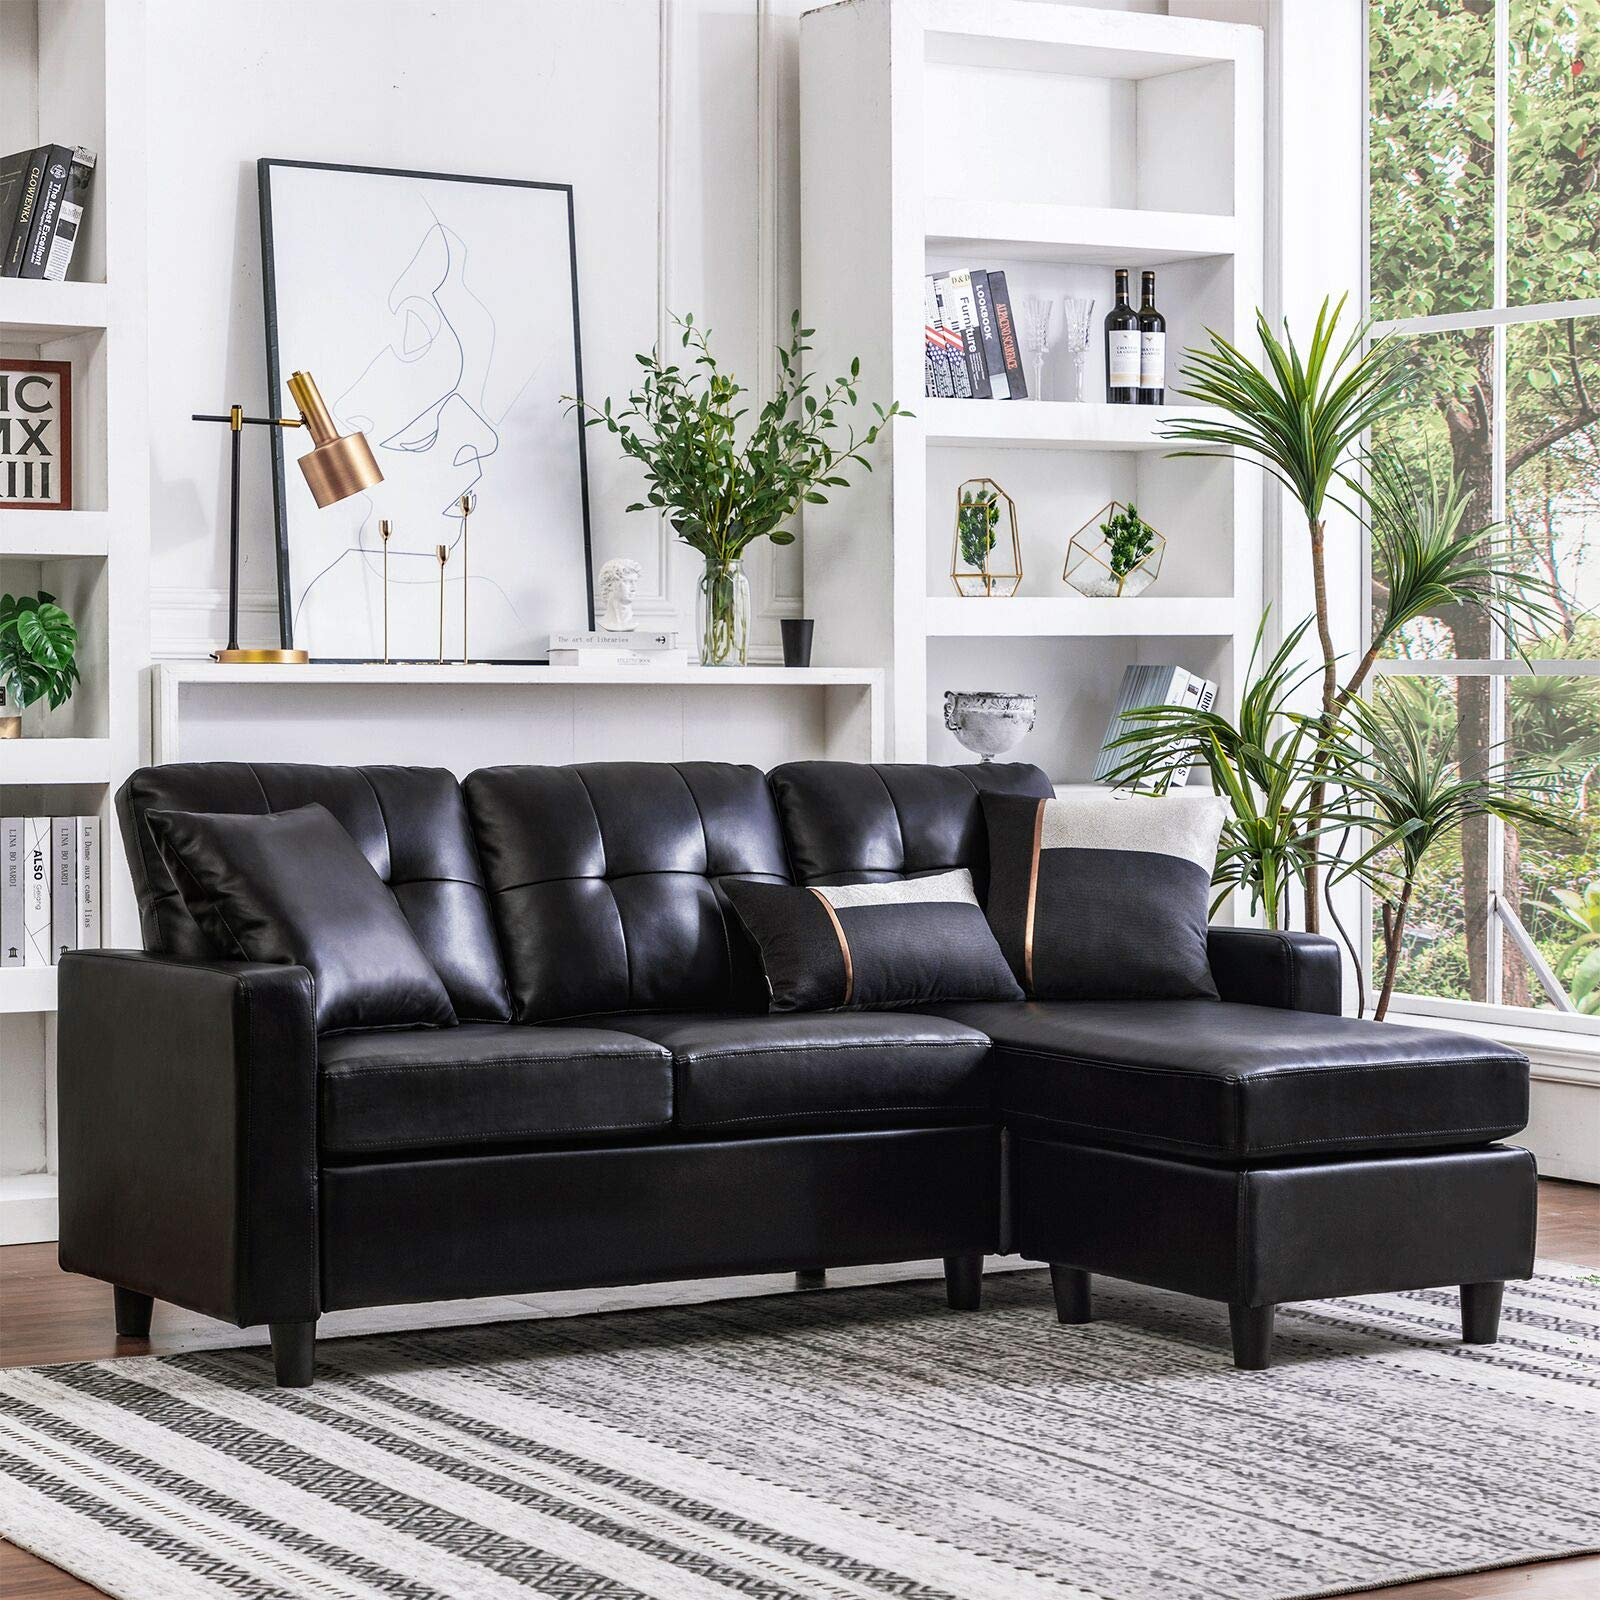 HONBAY Convertible Sectional Sofa Couch Leather L-Shape Couch with Modern Faux Leather Sectional for Small Space Apartment Black by Honbay